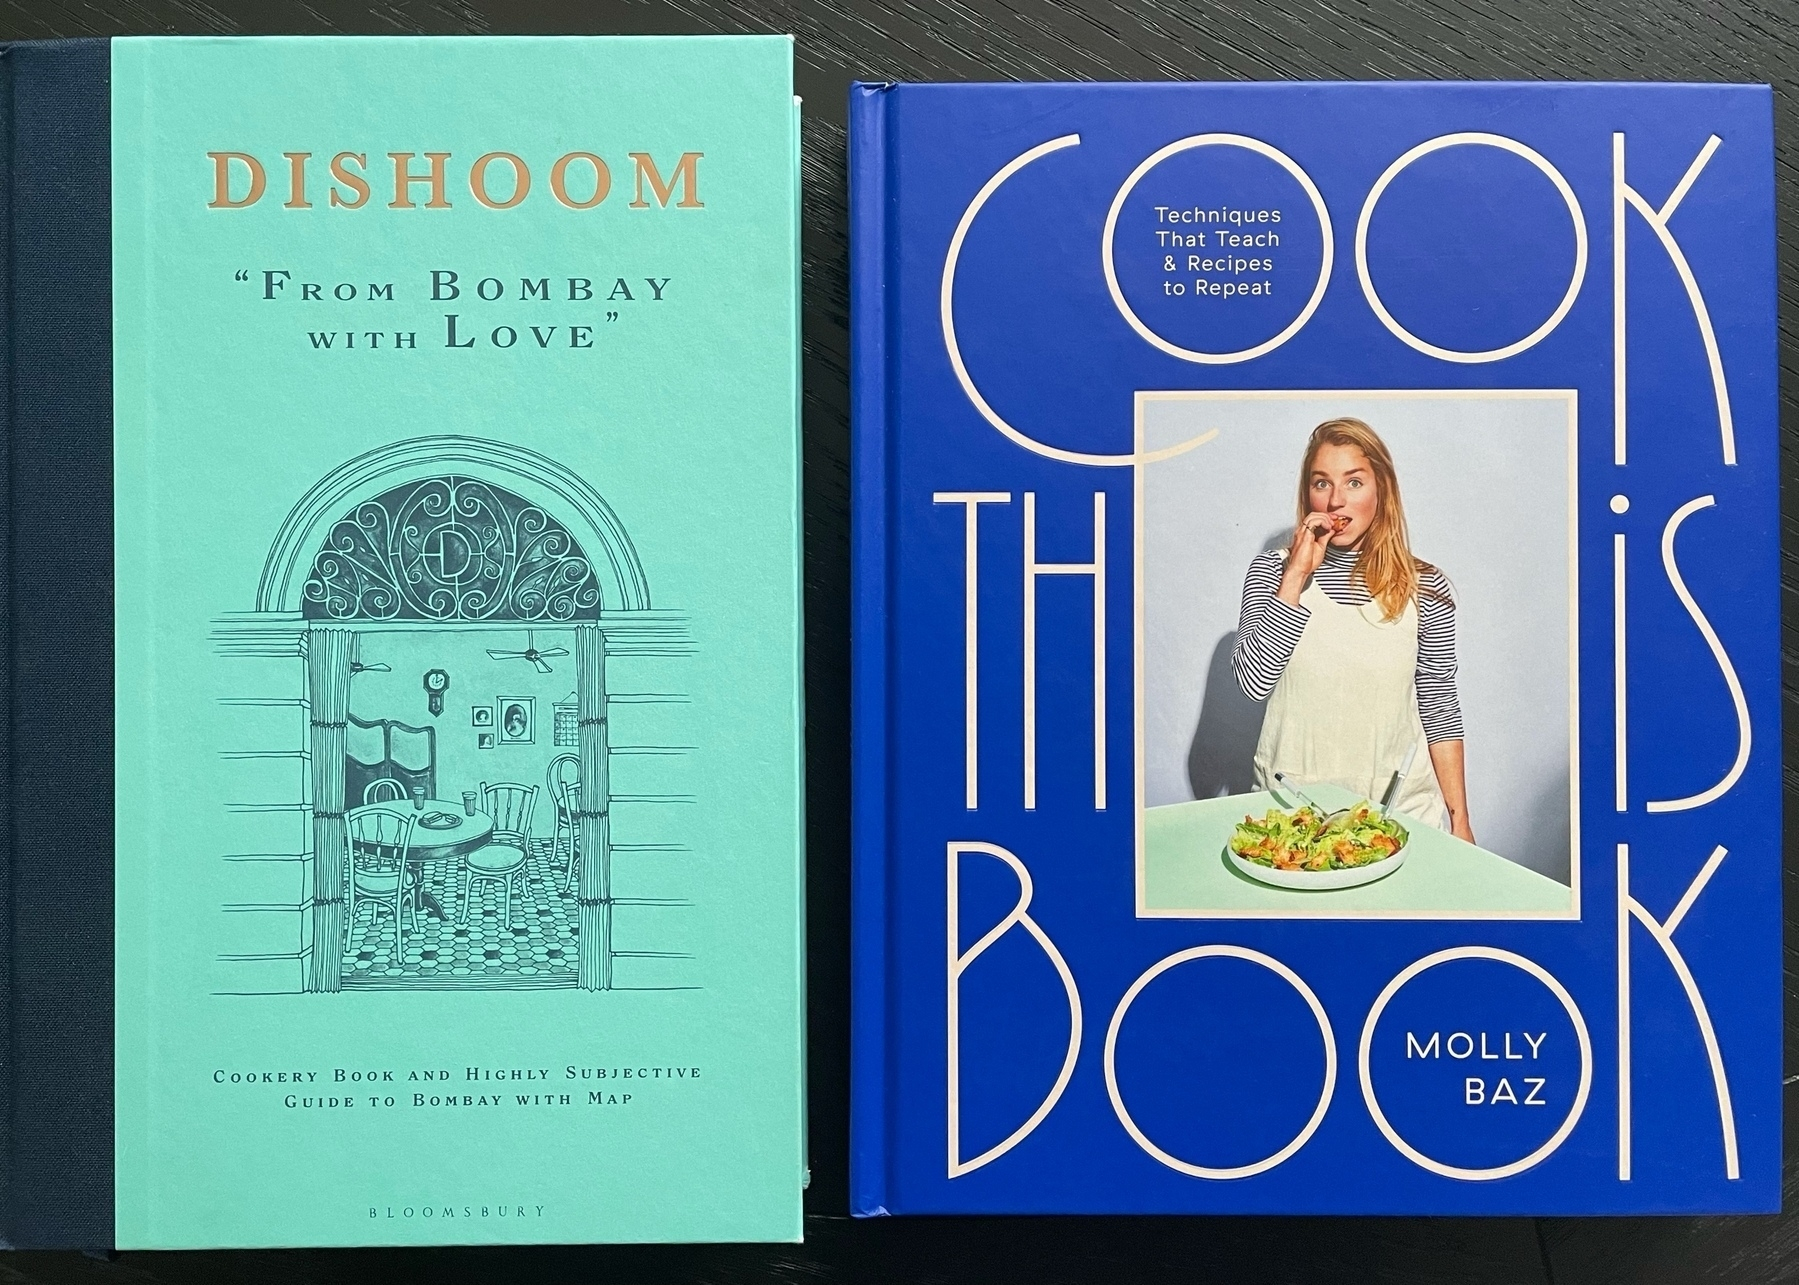 Dishoom and Cook This Book